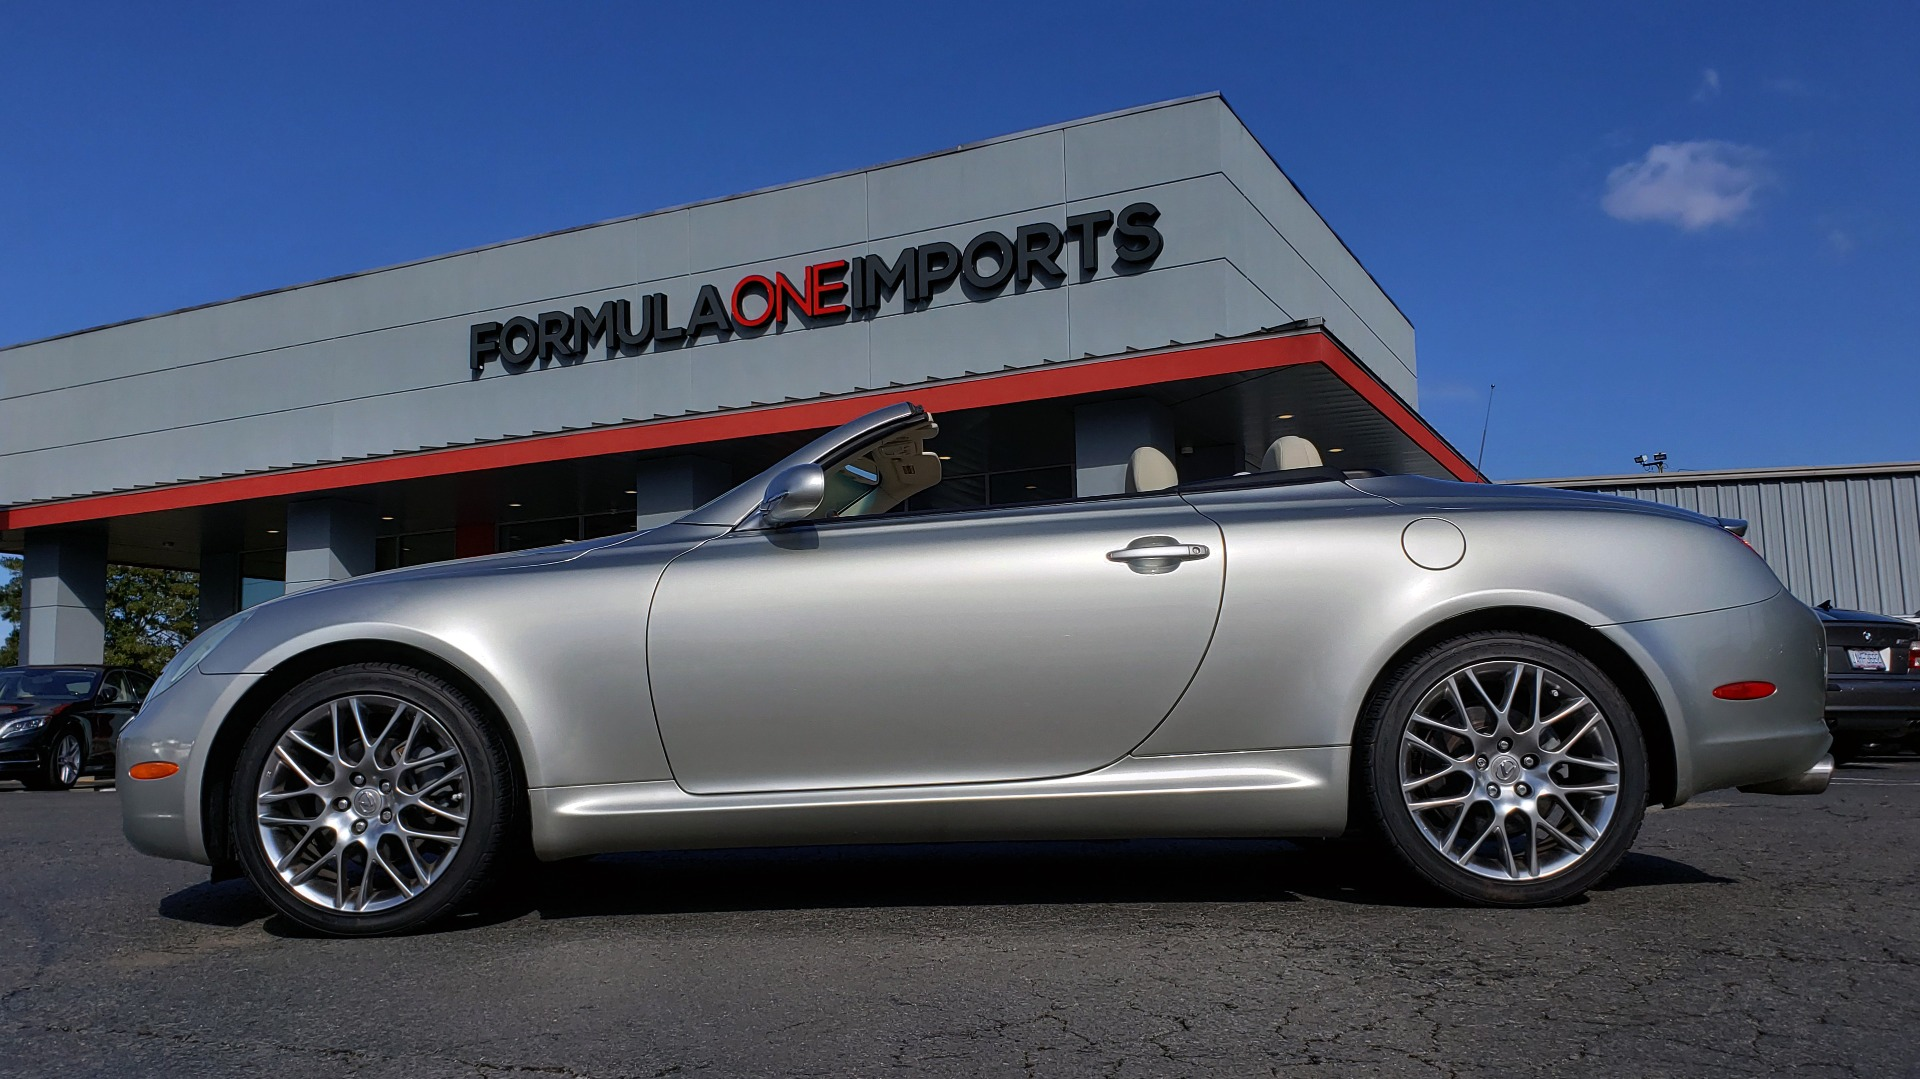 Used 2004 Lexus SC 430 CONVERTIBLE / 4.3L V8 / 5-SPD AUTO / MARK LEVINSON / 18IN WHEELS for sale $14,995 at Formula Imports in Charlotte NC 28227 80